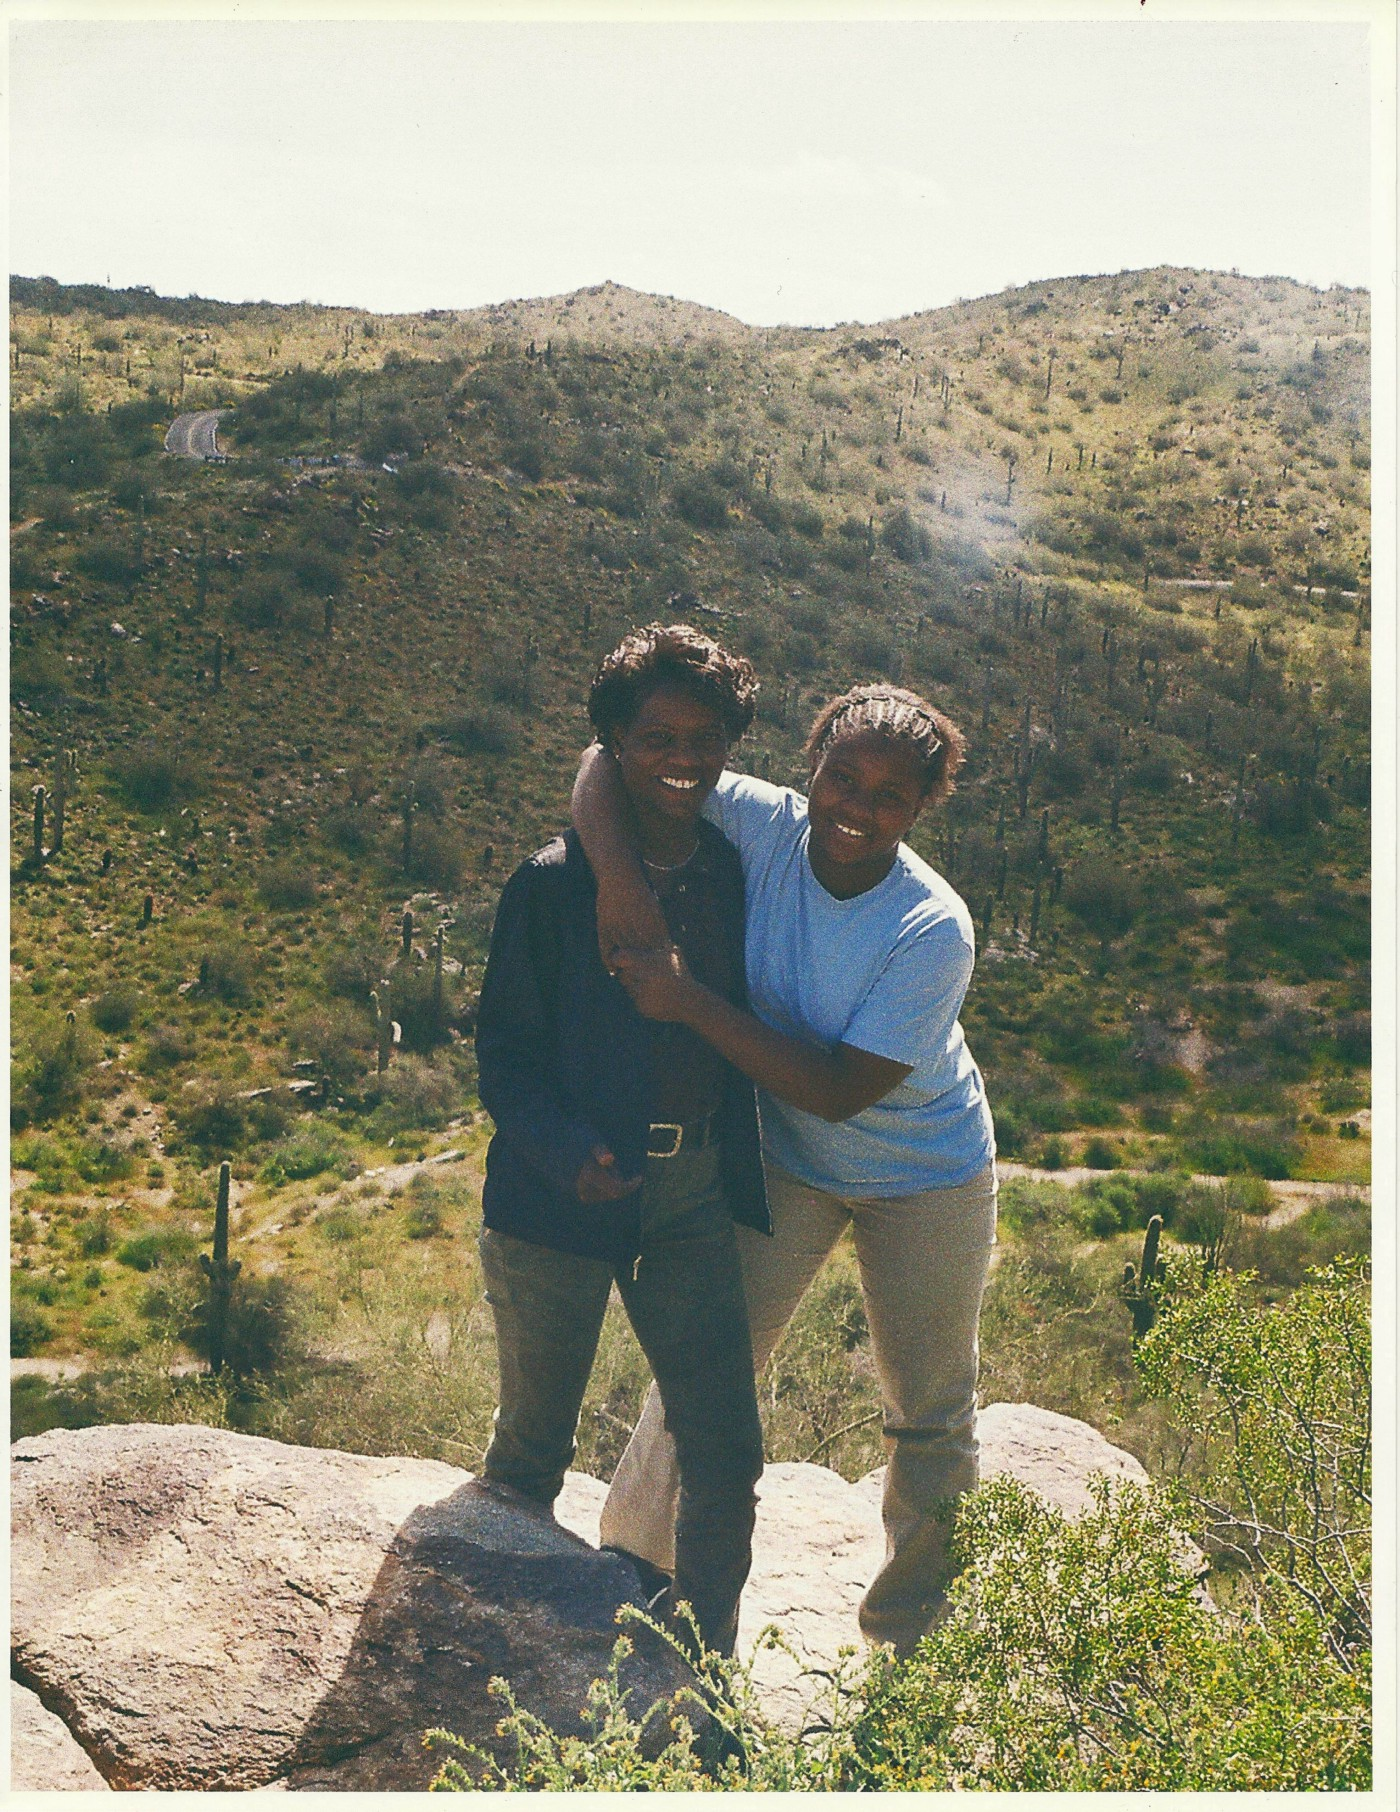 Nicole and her mom hiking near the Prescott National Forest in Arizona. Nicole has her arms around her mom and both are smiling with hills and trees in the background. Photo credit: Nicole Hams